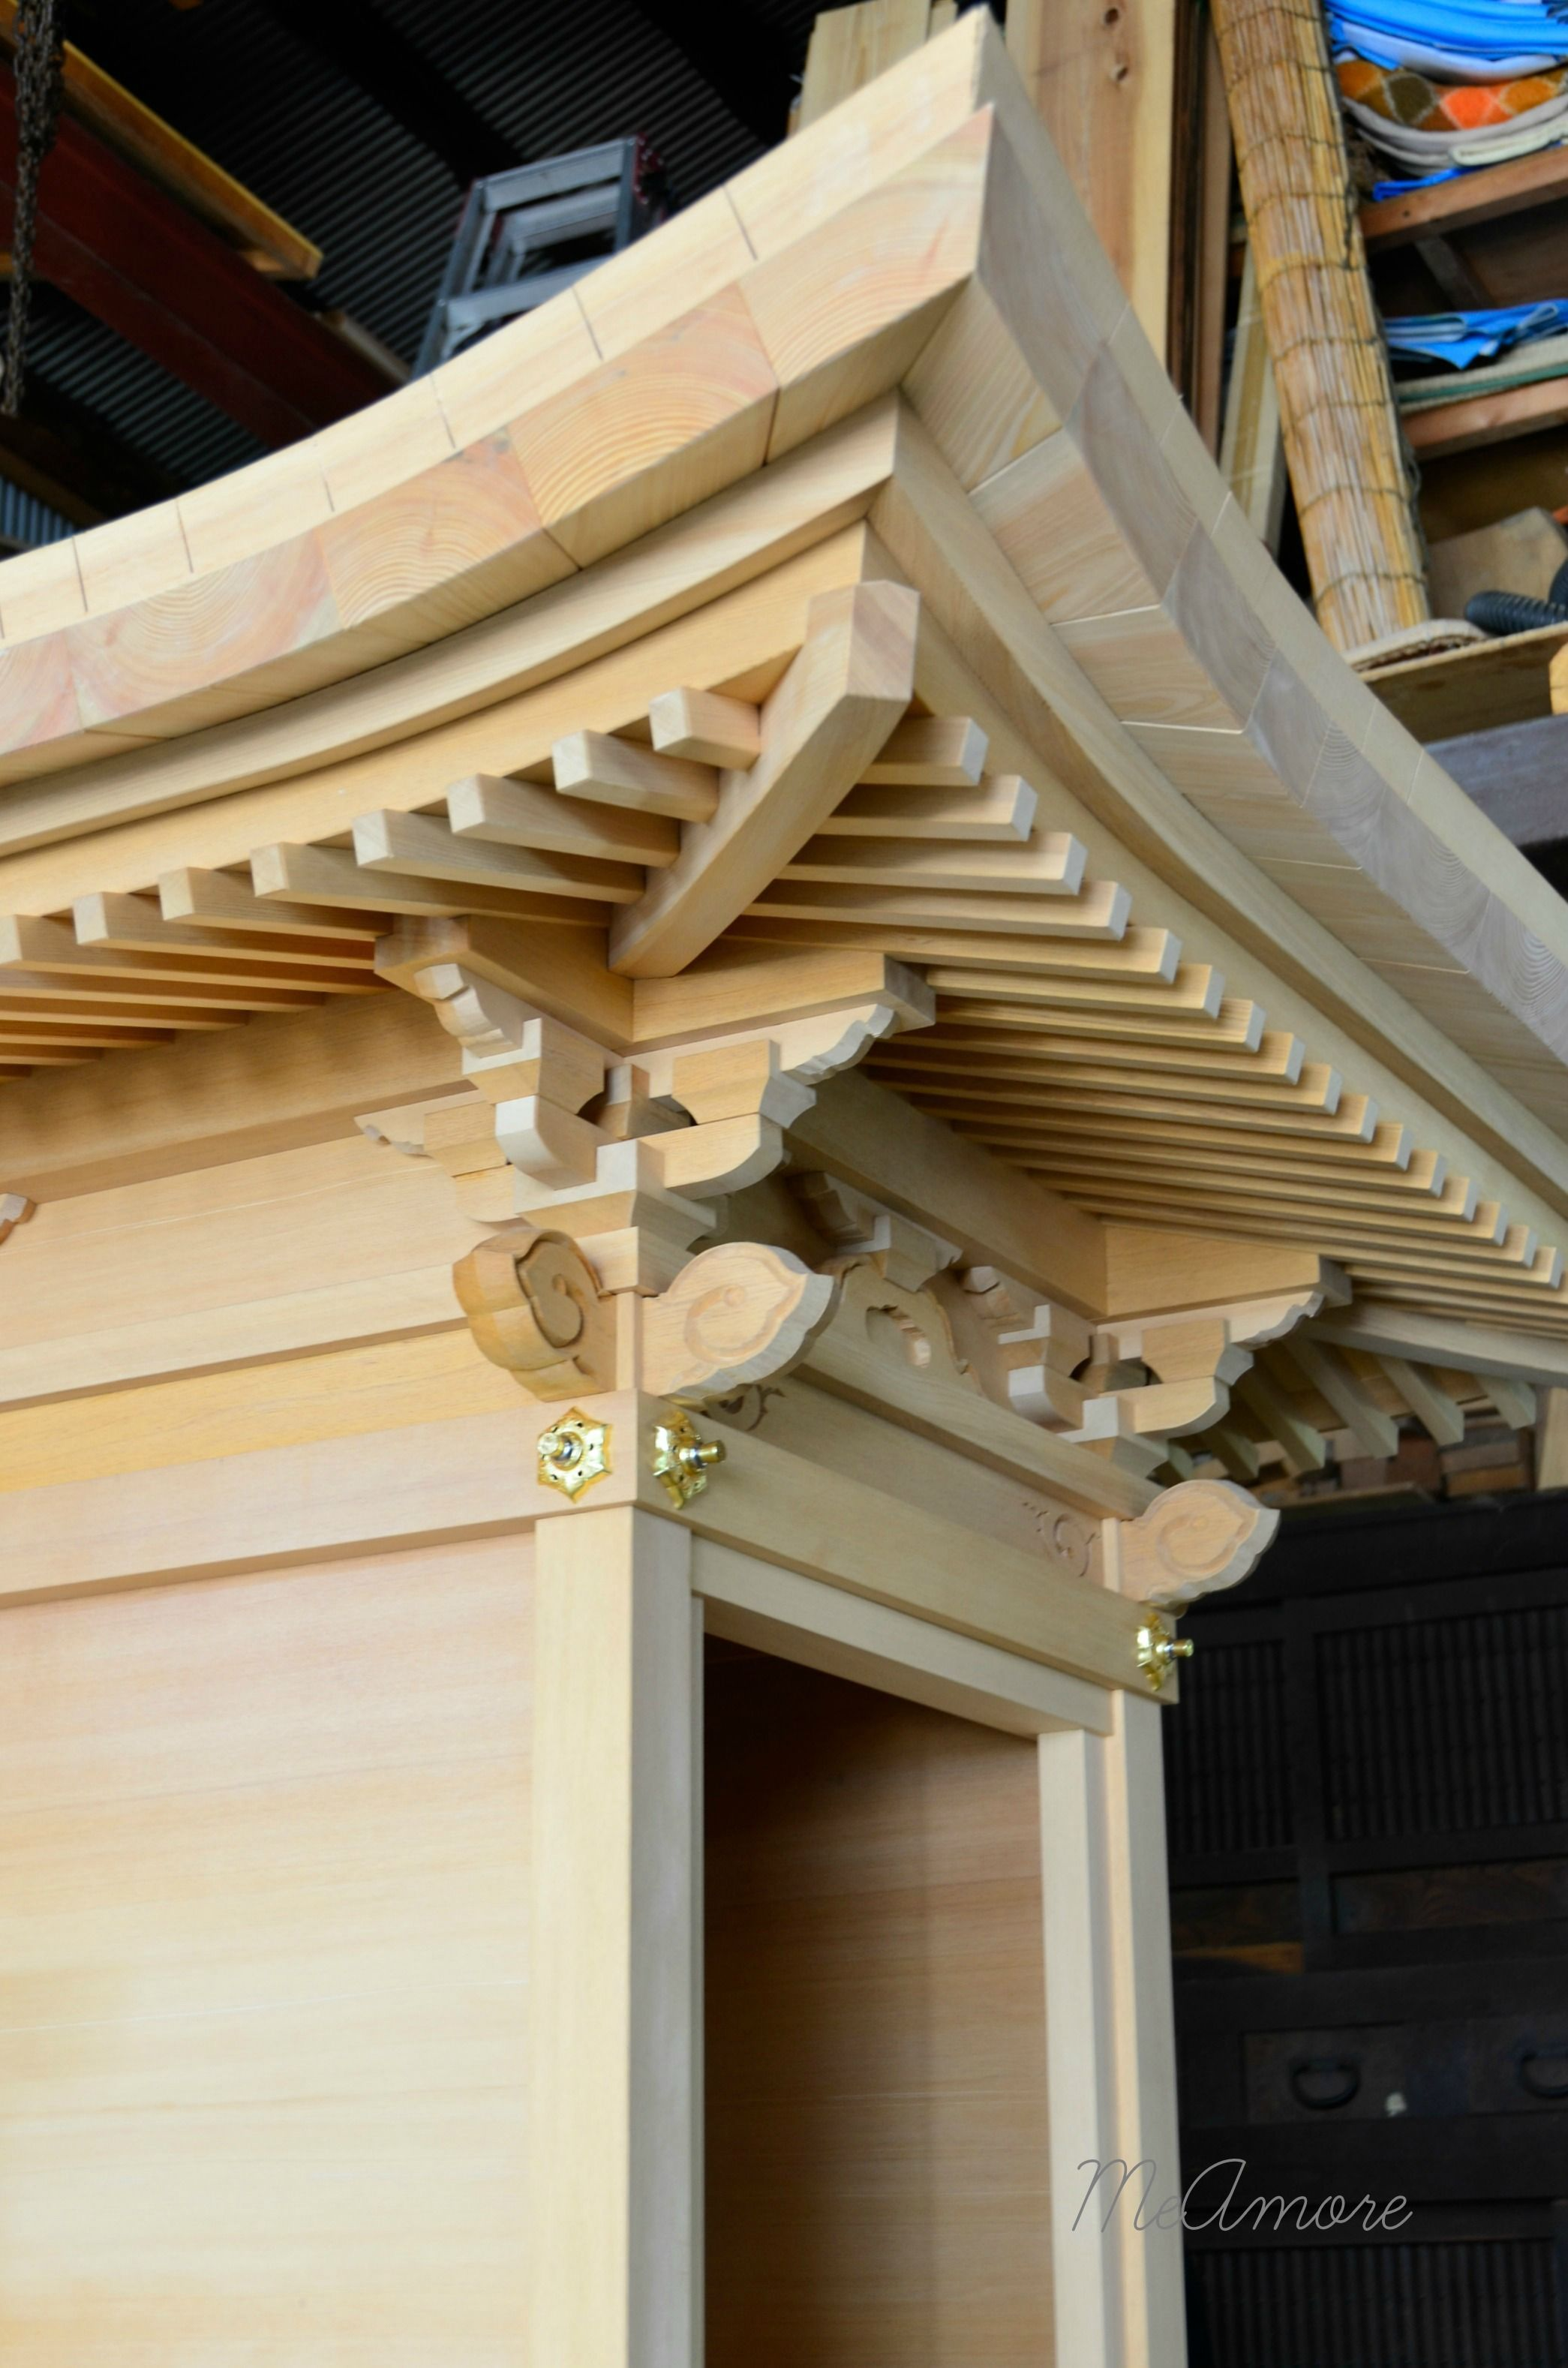 4 Abundant Ideas Ranch Roofing Styles Roofing House Doors Roofing Tiles Decor Modern Roof Traditional Japanese Architecture Japanese Architecture Architecture